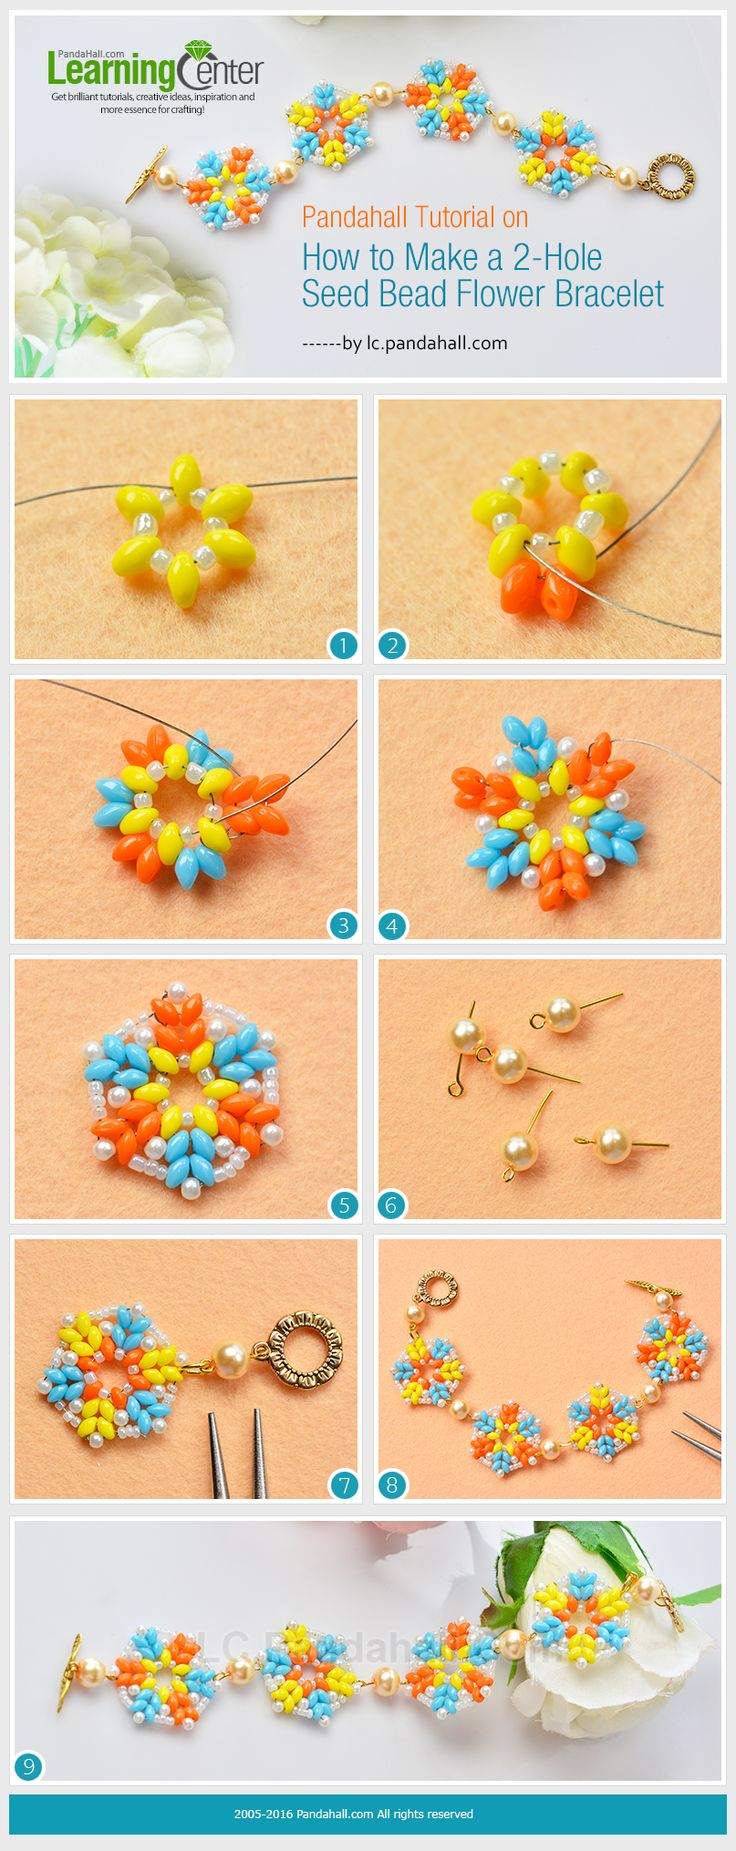 Tutorial on How to Make a 2-Hole Seed Bead Flower Bracelet from LC.Pandahall.com